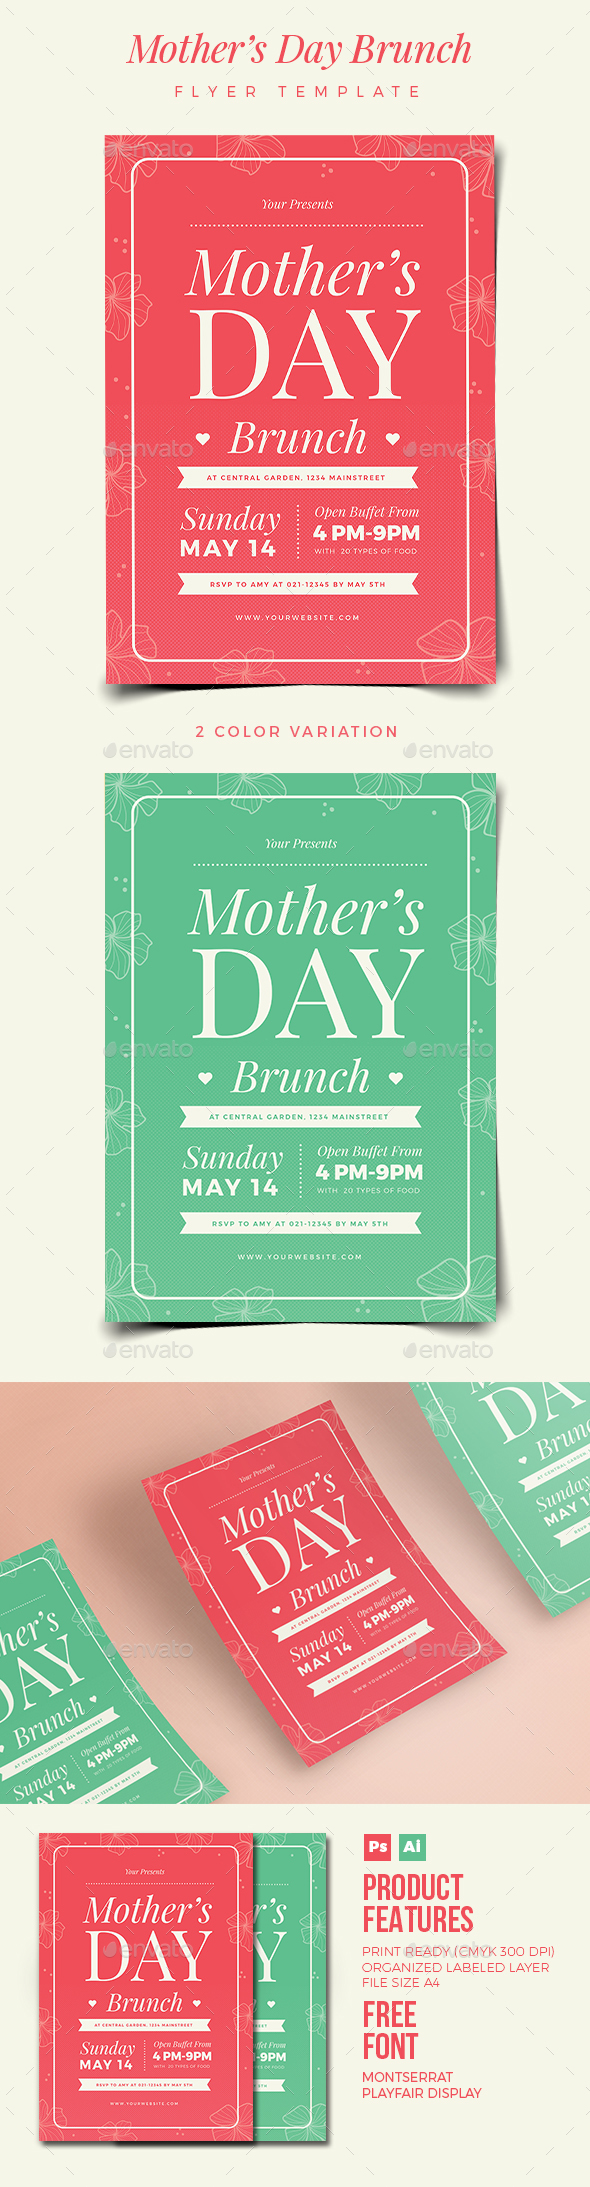 Mothers Day Brunch Flyer 02 - Holiday Greeting Cards